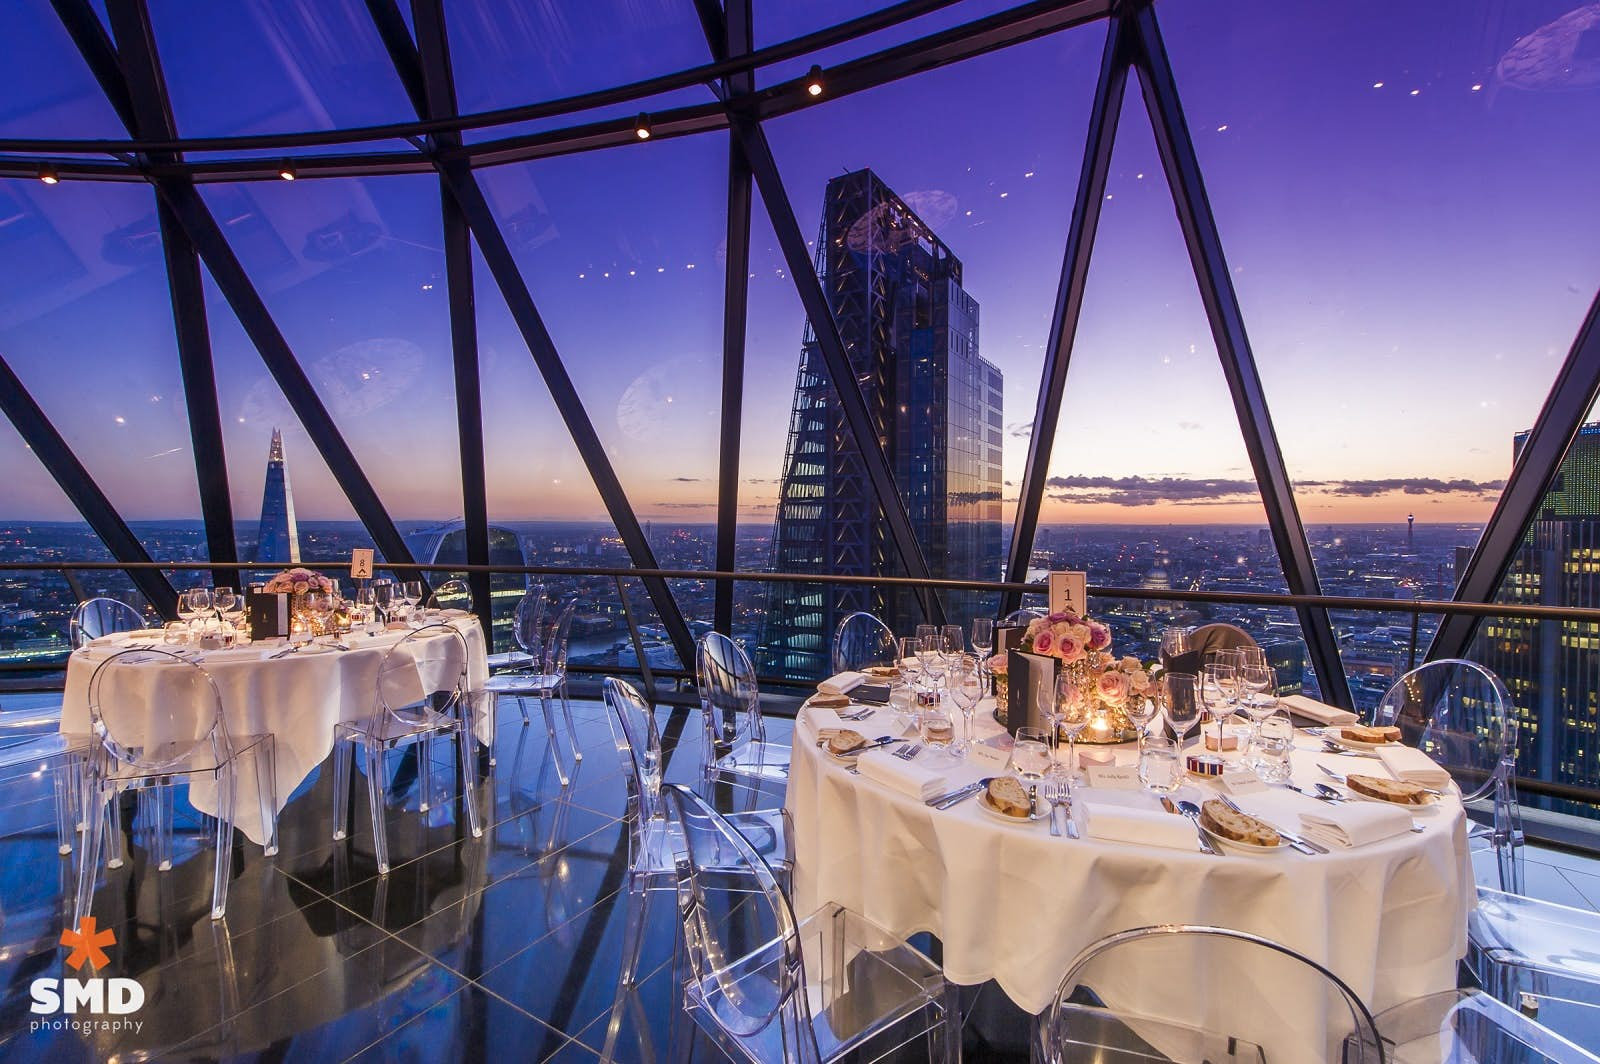 button at Searcys at The Gherkin